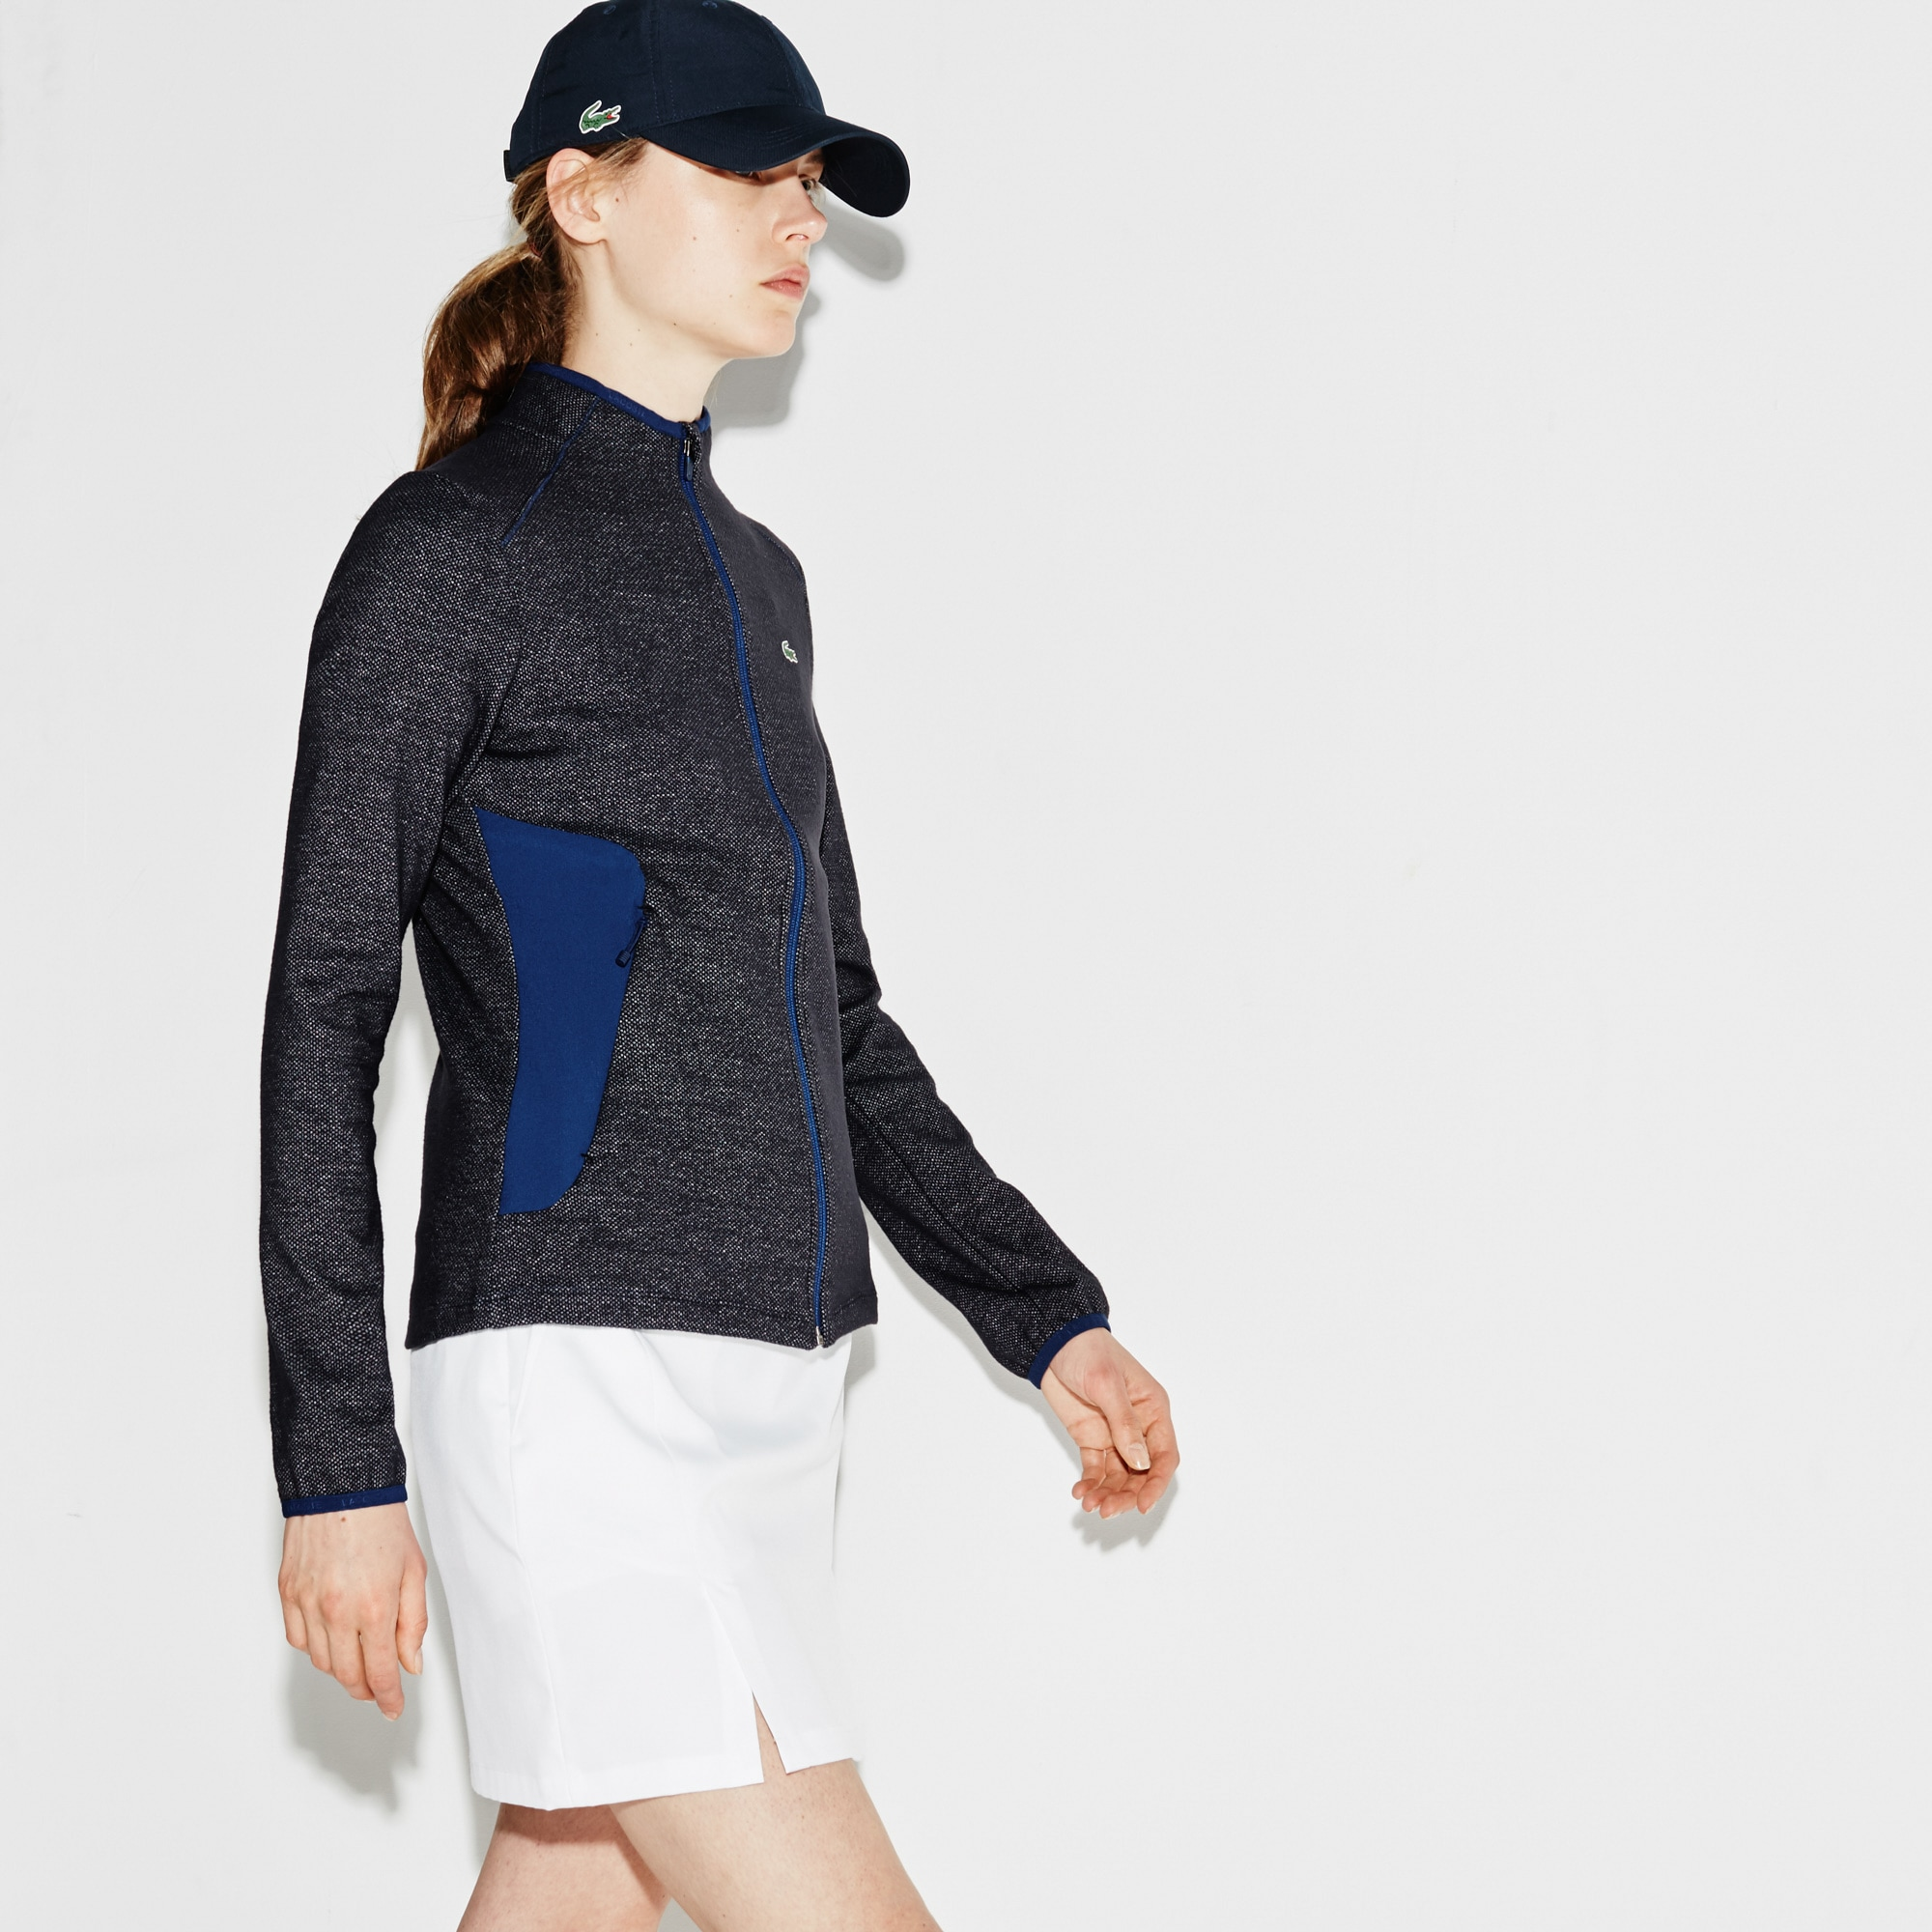 Women's  SPORT Golf Stretch Tech Midlayer Zip Sweatshirt